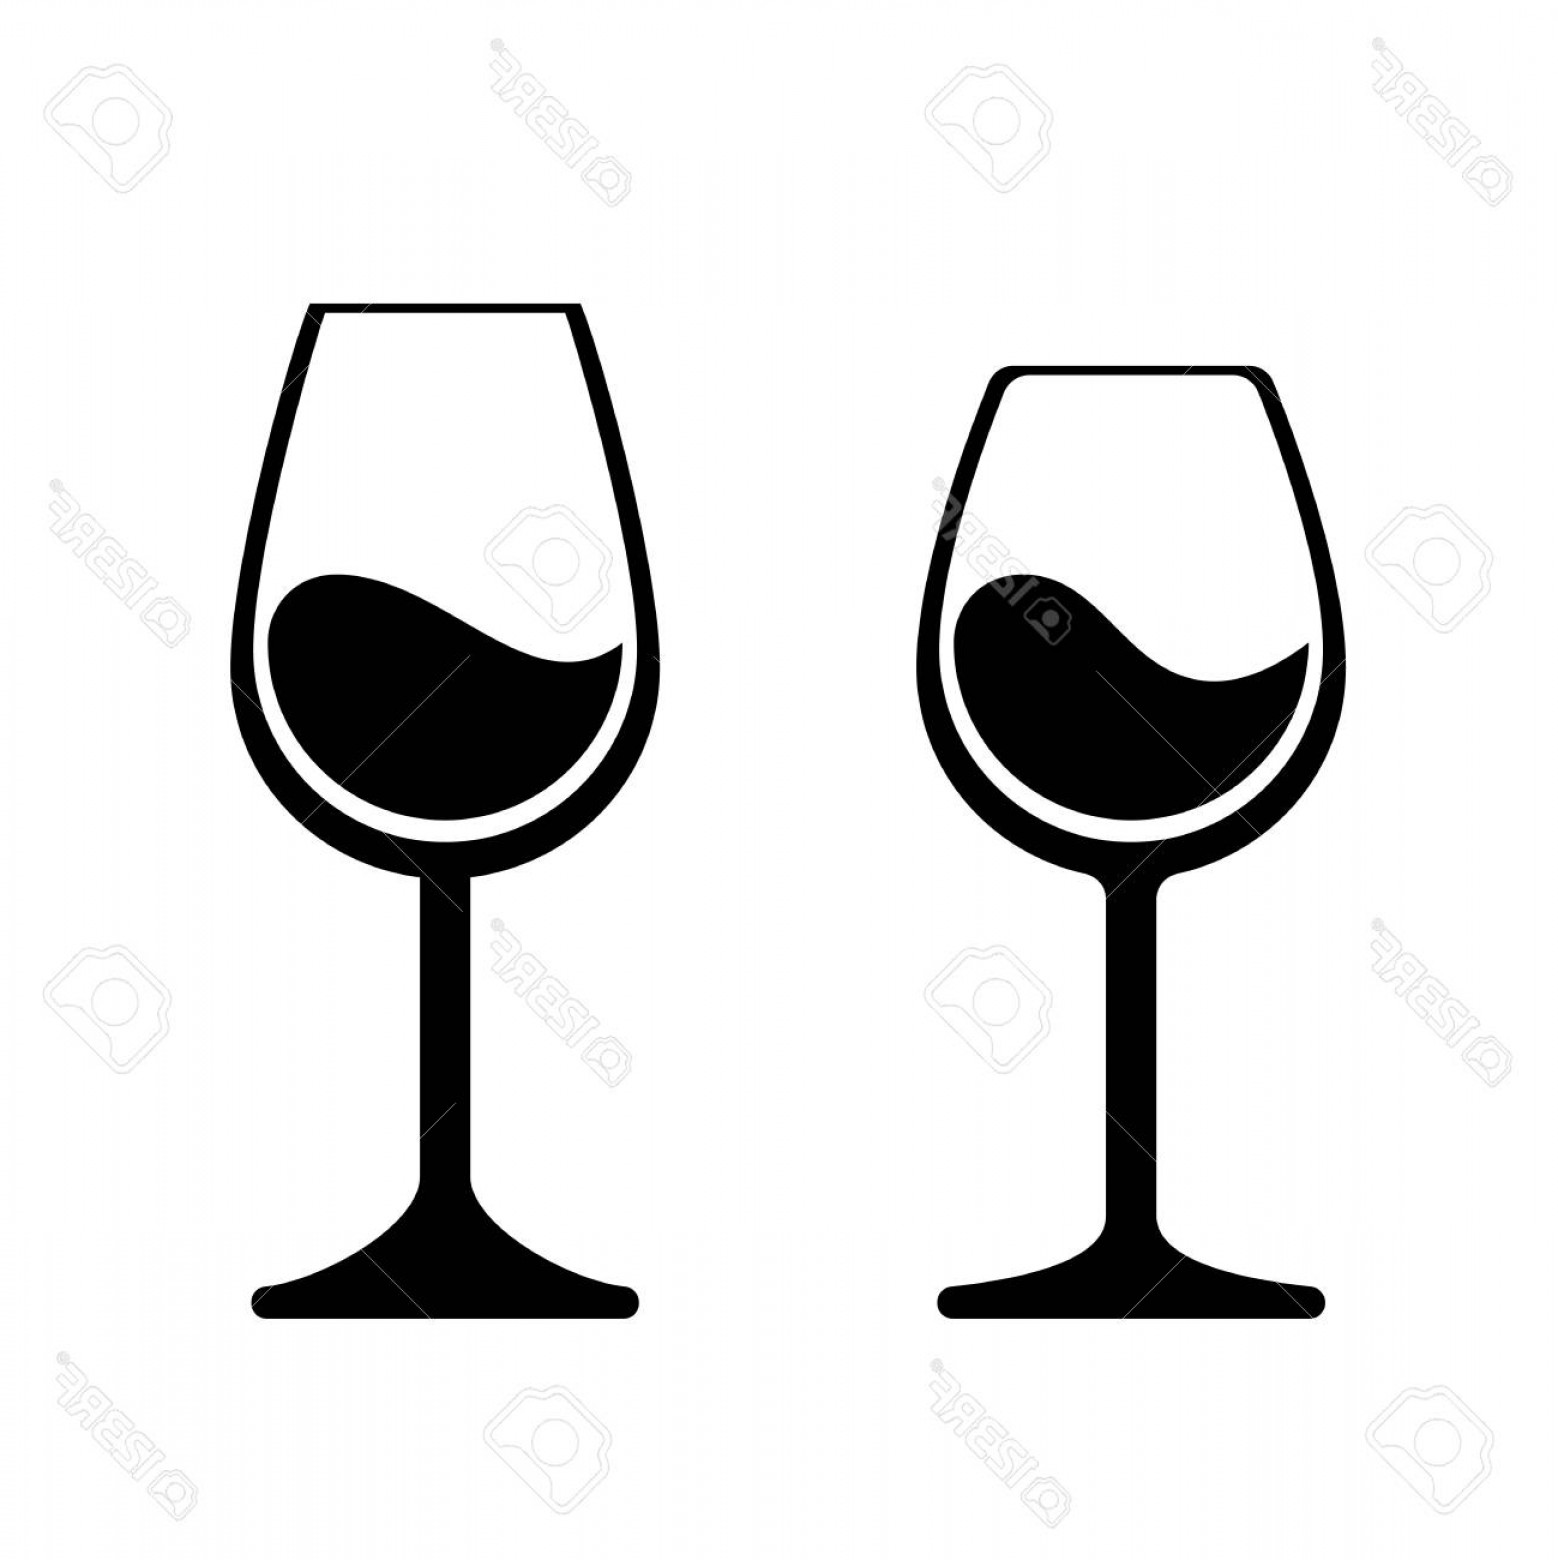 Single Wine Glass Silhouette Vector: Photostock Vector Wine Glass Vector Icons Isolated Wineglass Silhouette Alcohol Beverage Sign